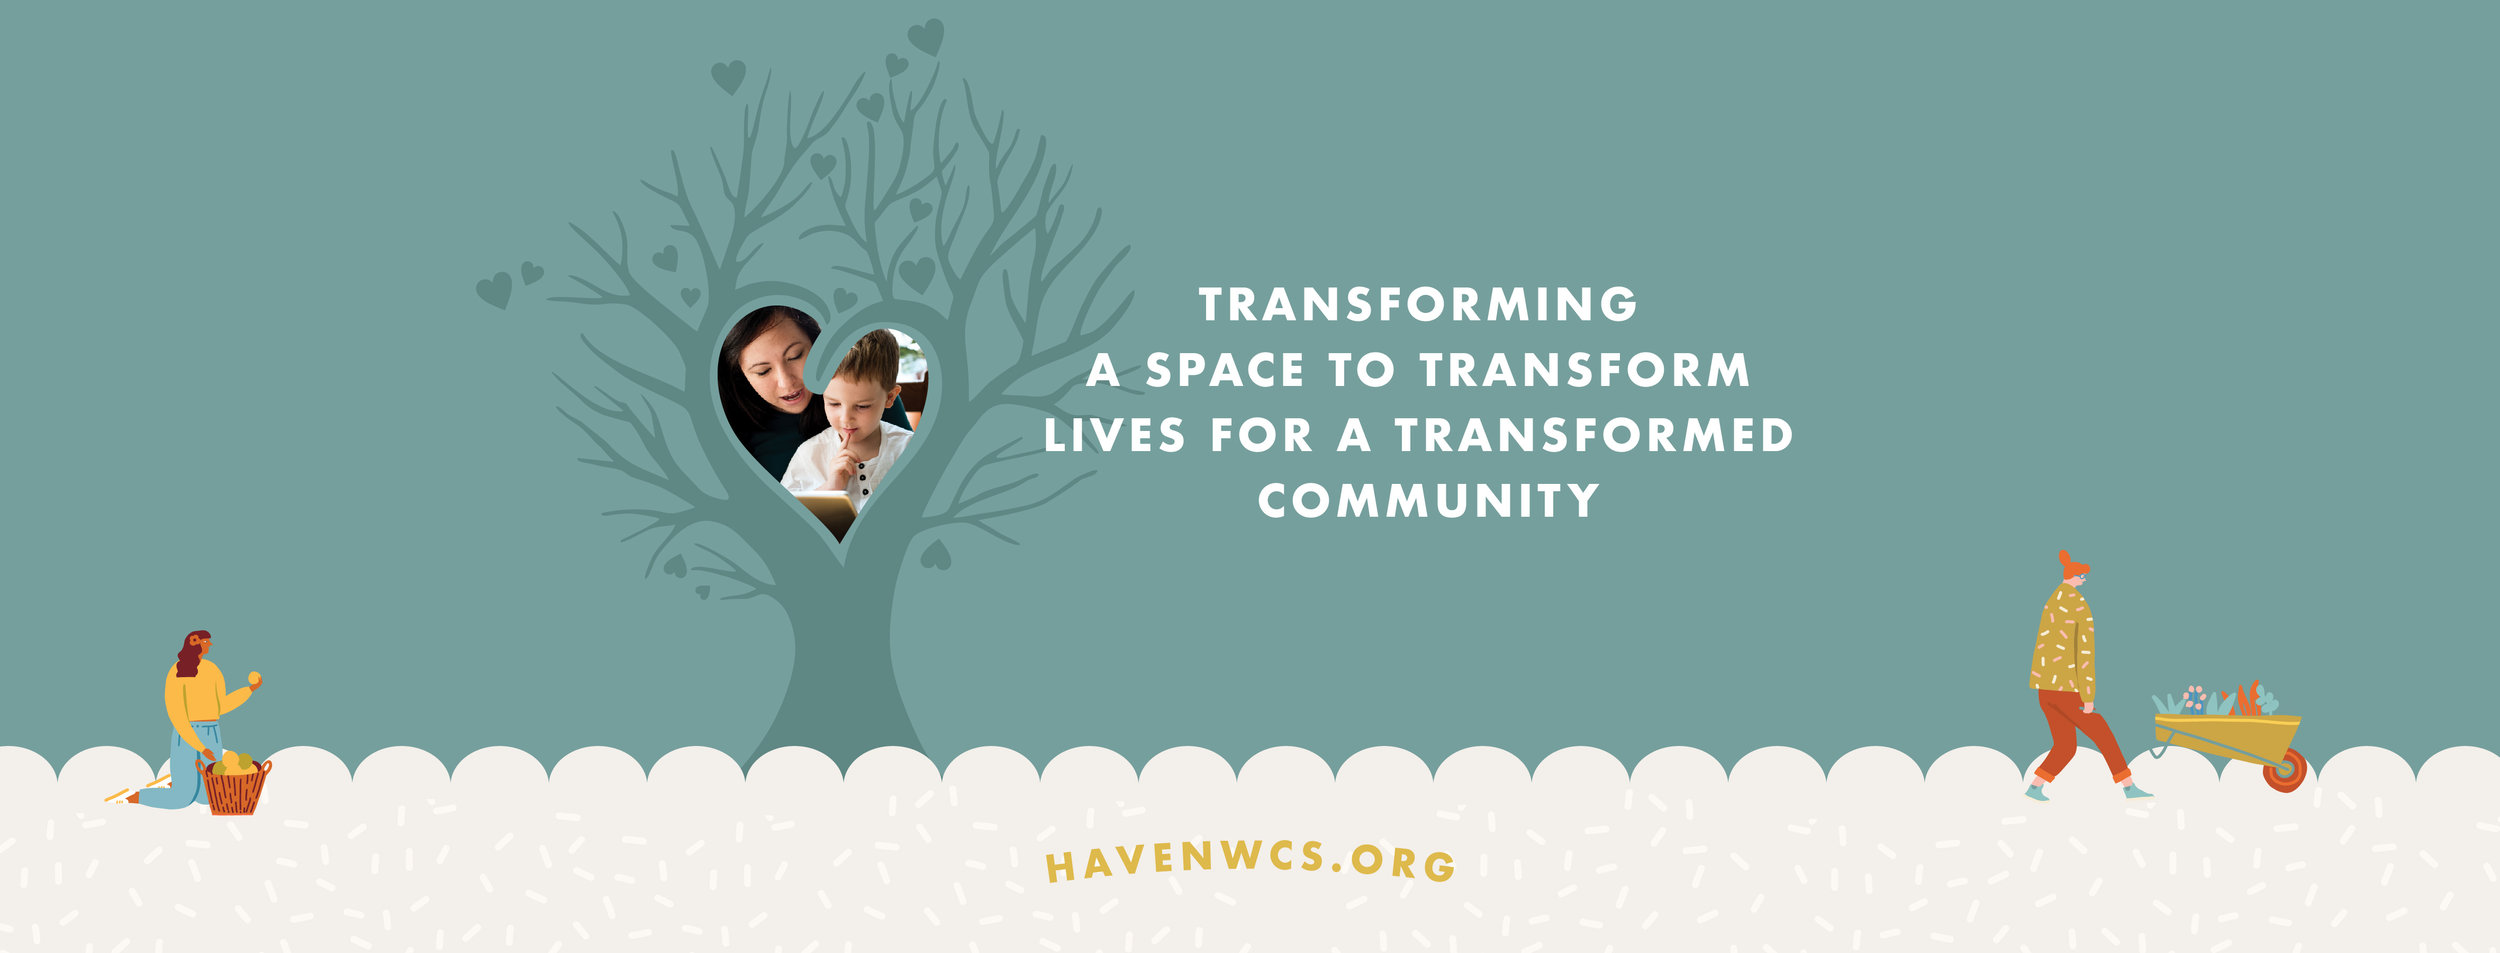 We are deeply grateful for all our donors who have supported our vision of Haven's Youth Center.